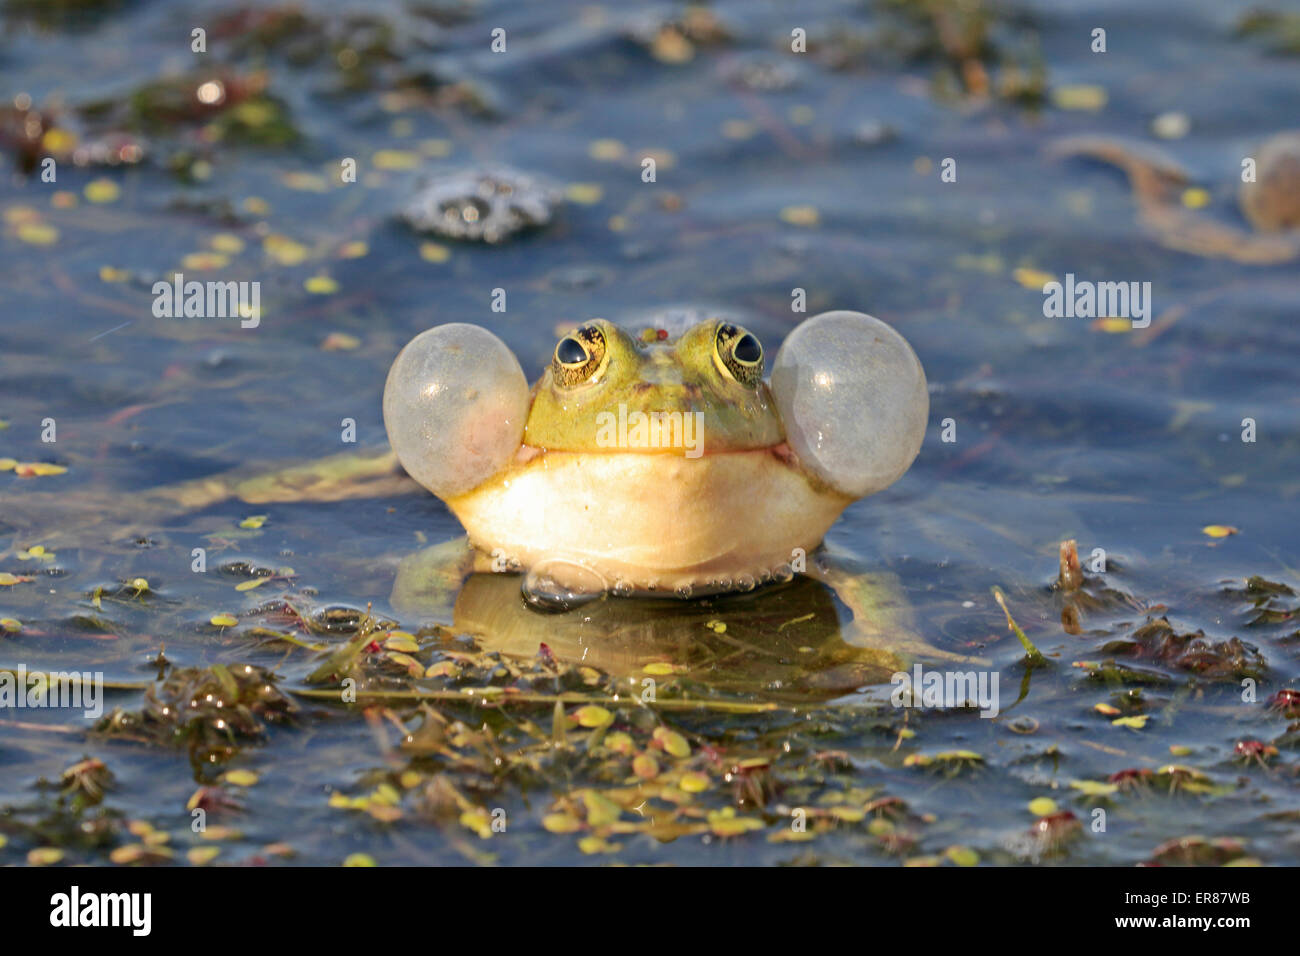 Green Frog with its air sacs expanded in the Danube Delta - Stock Image